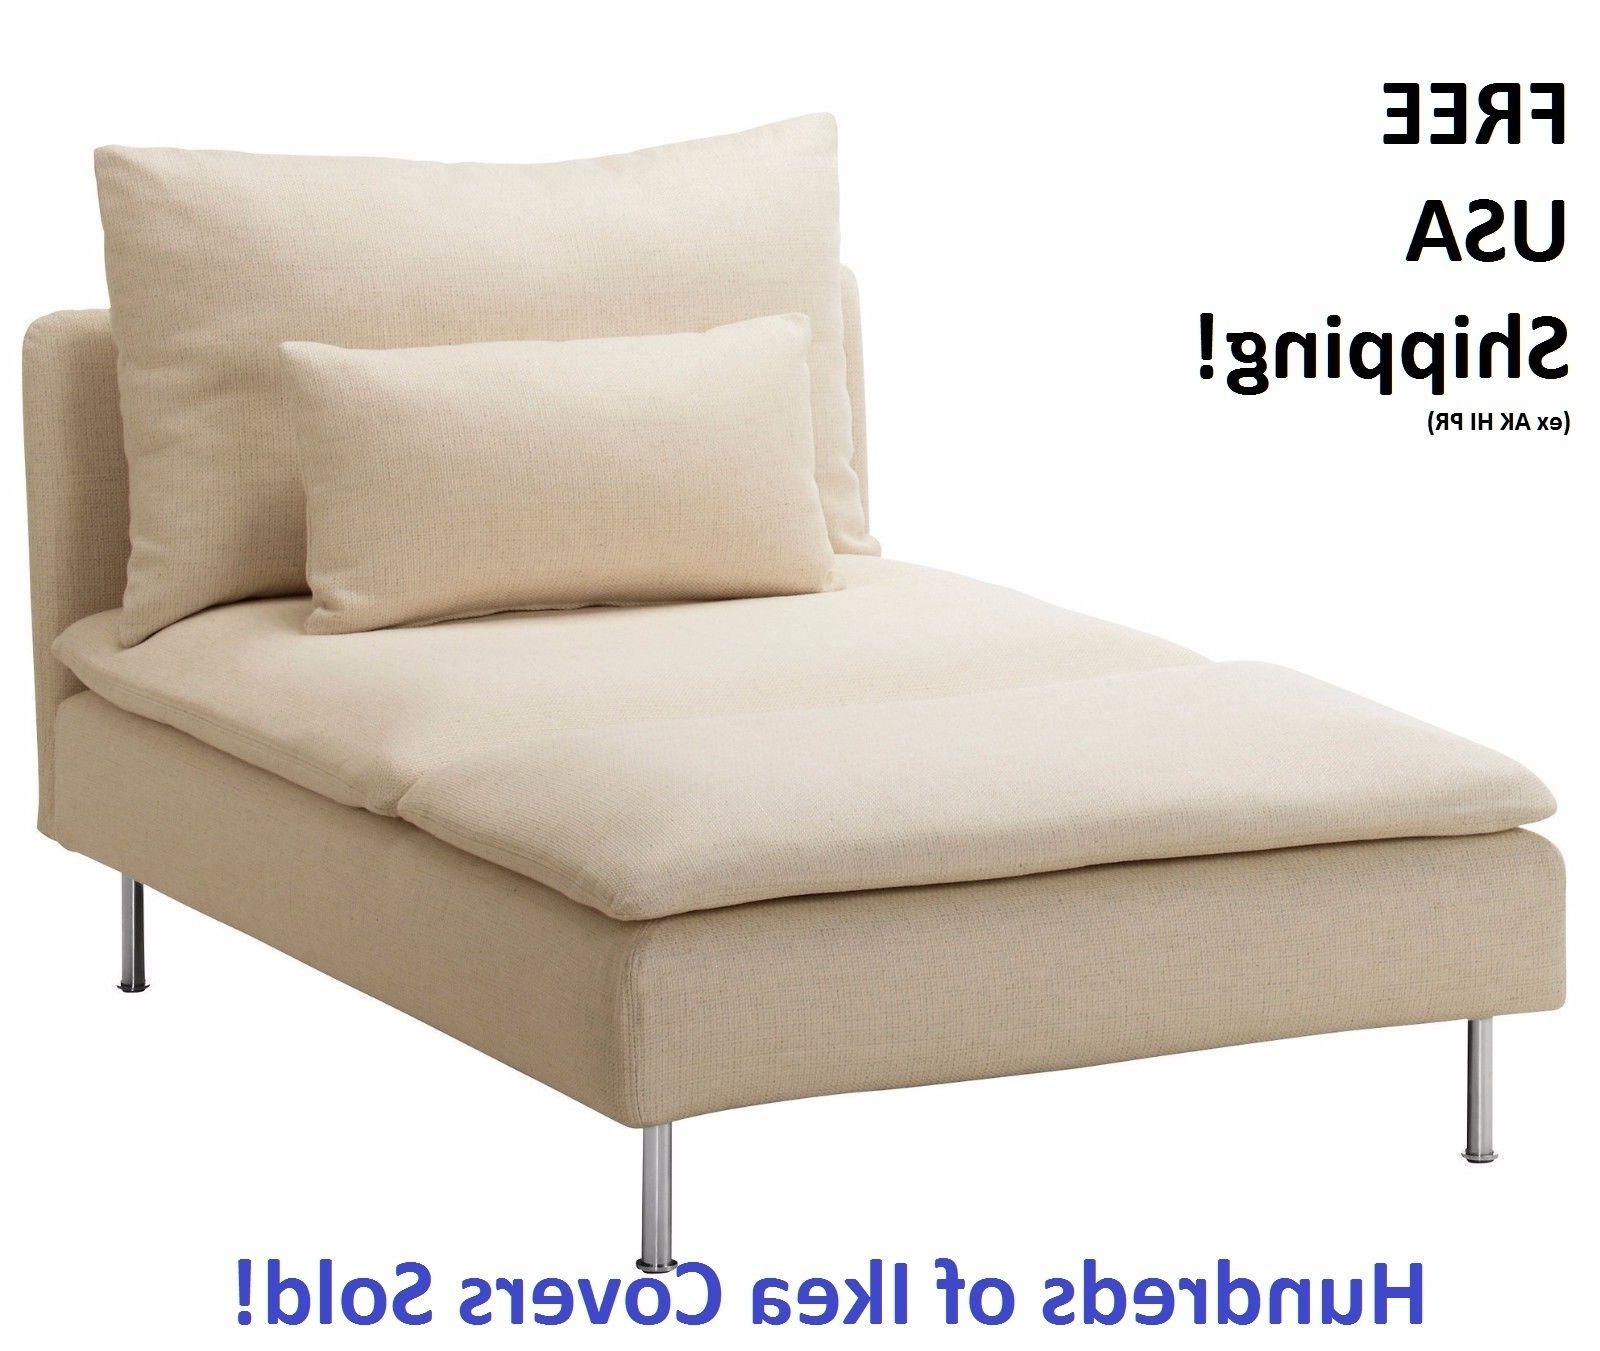 Ebay Intended For Popular Indoor Chaise Lounge Slipcovers (View 15 of 15)